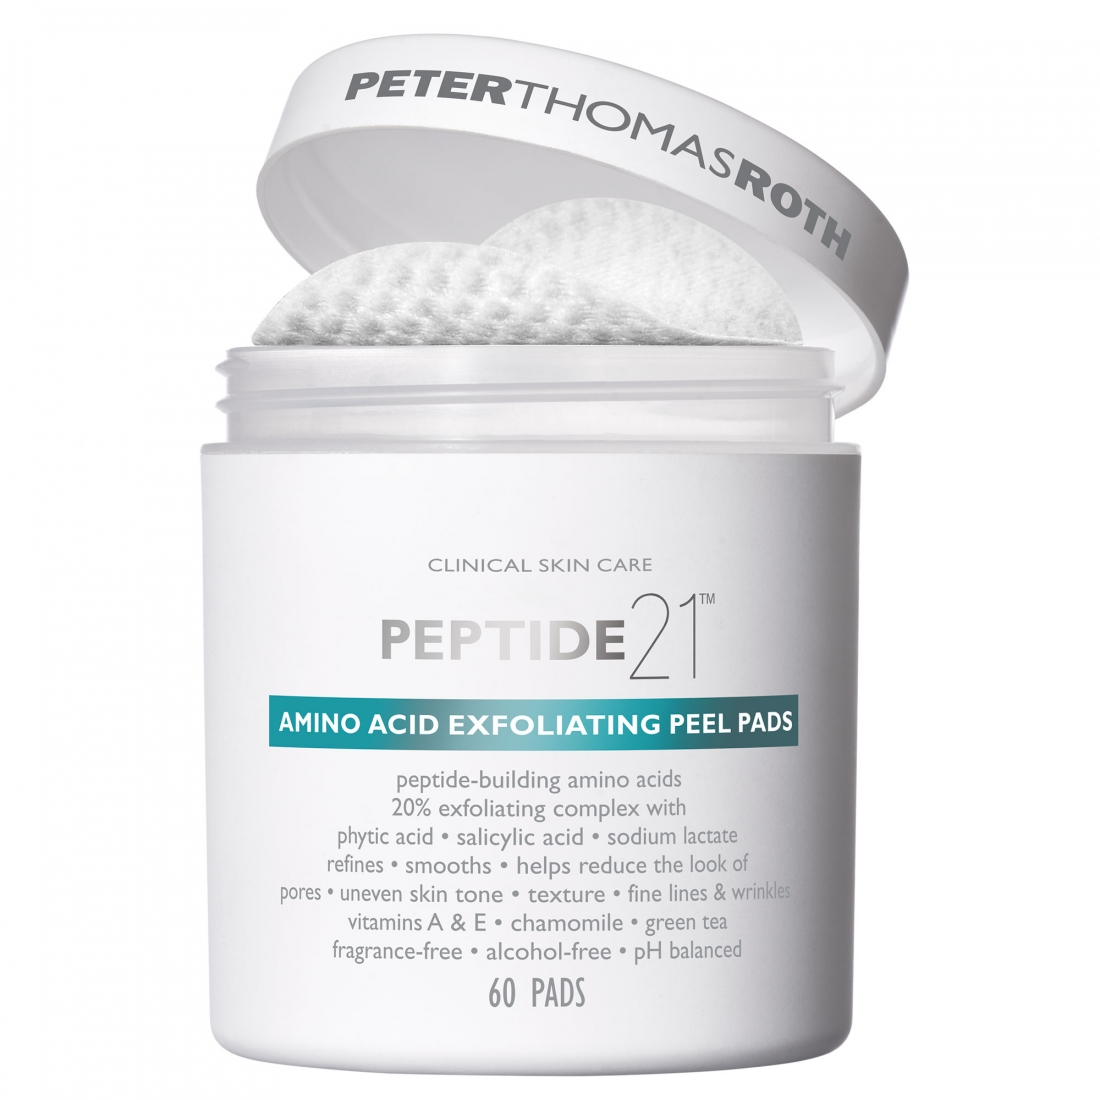 Peter Thomas Roth Peptide21 Amino Acid Exfoliating Peel Pads 60 Pads